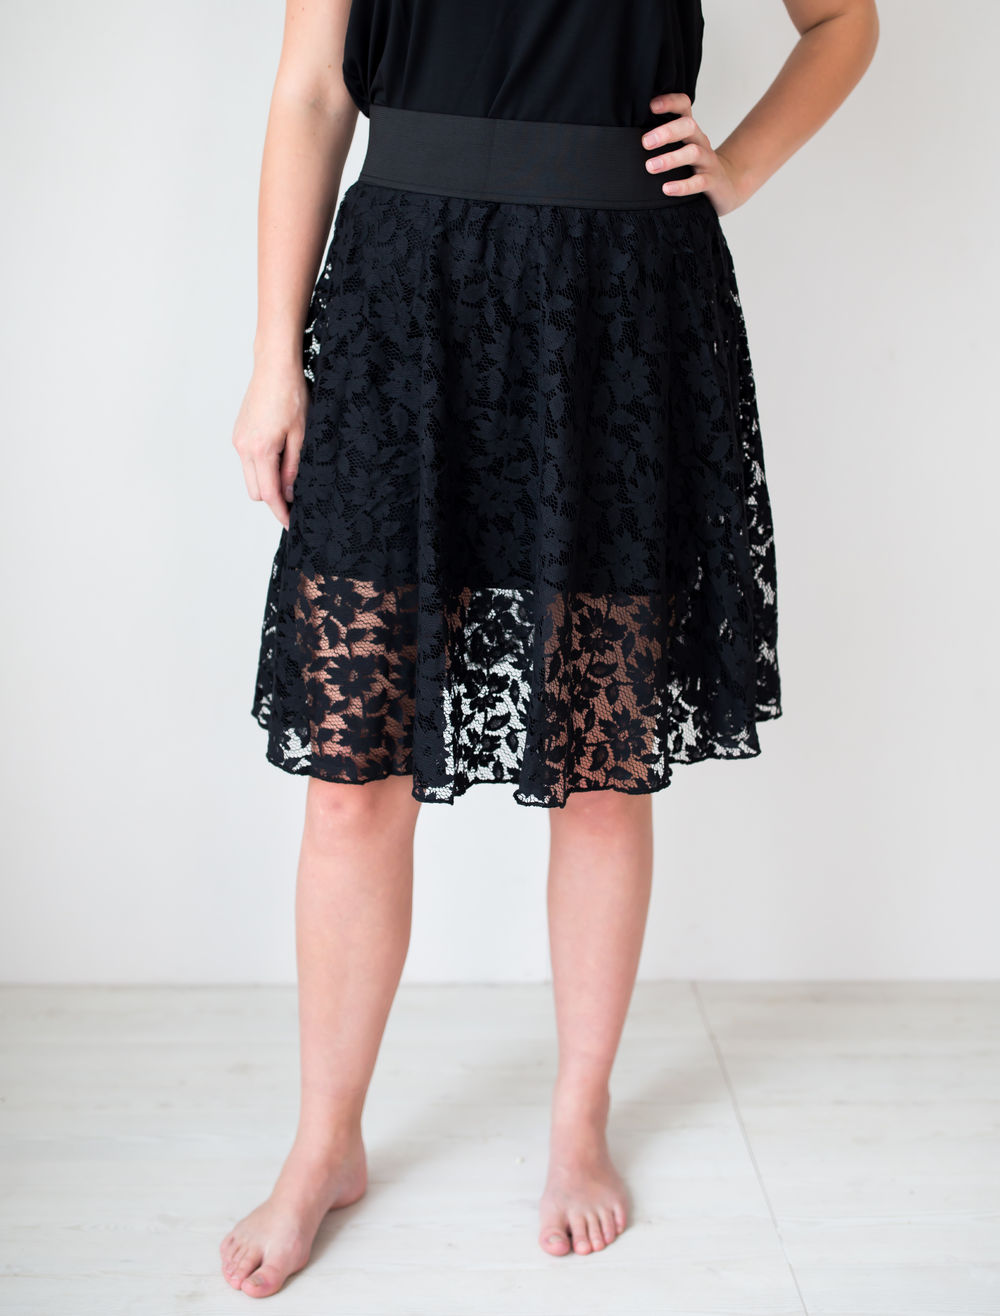 BLAA BILBAO WOMAN SKIRT, BLACK